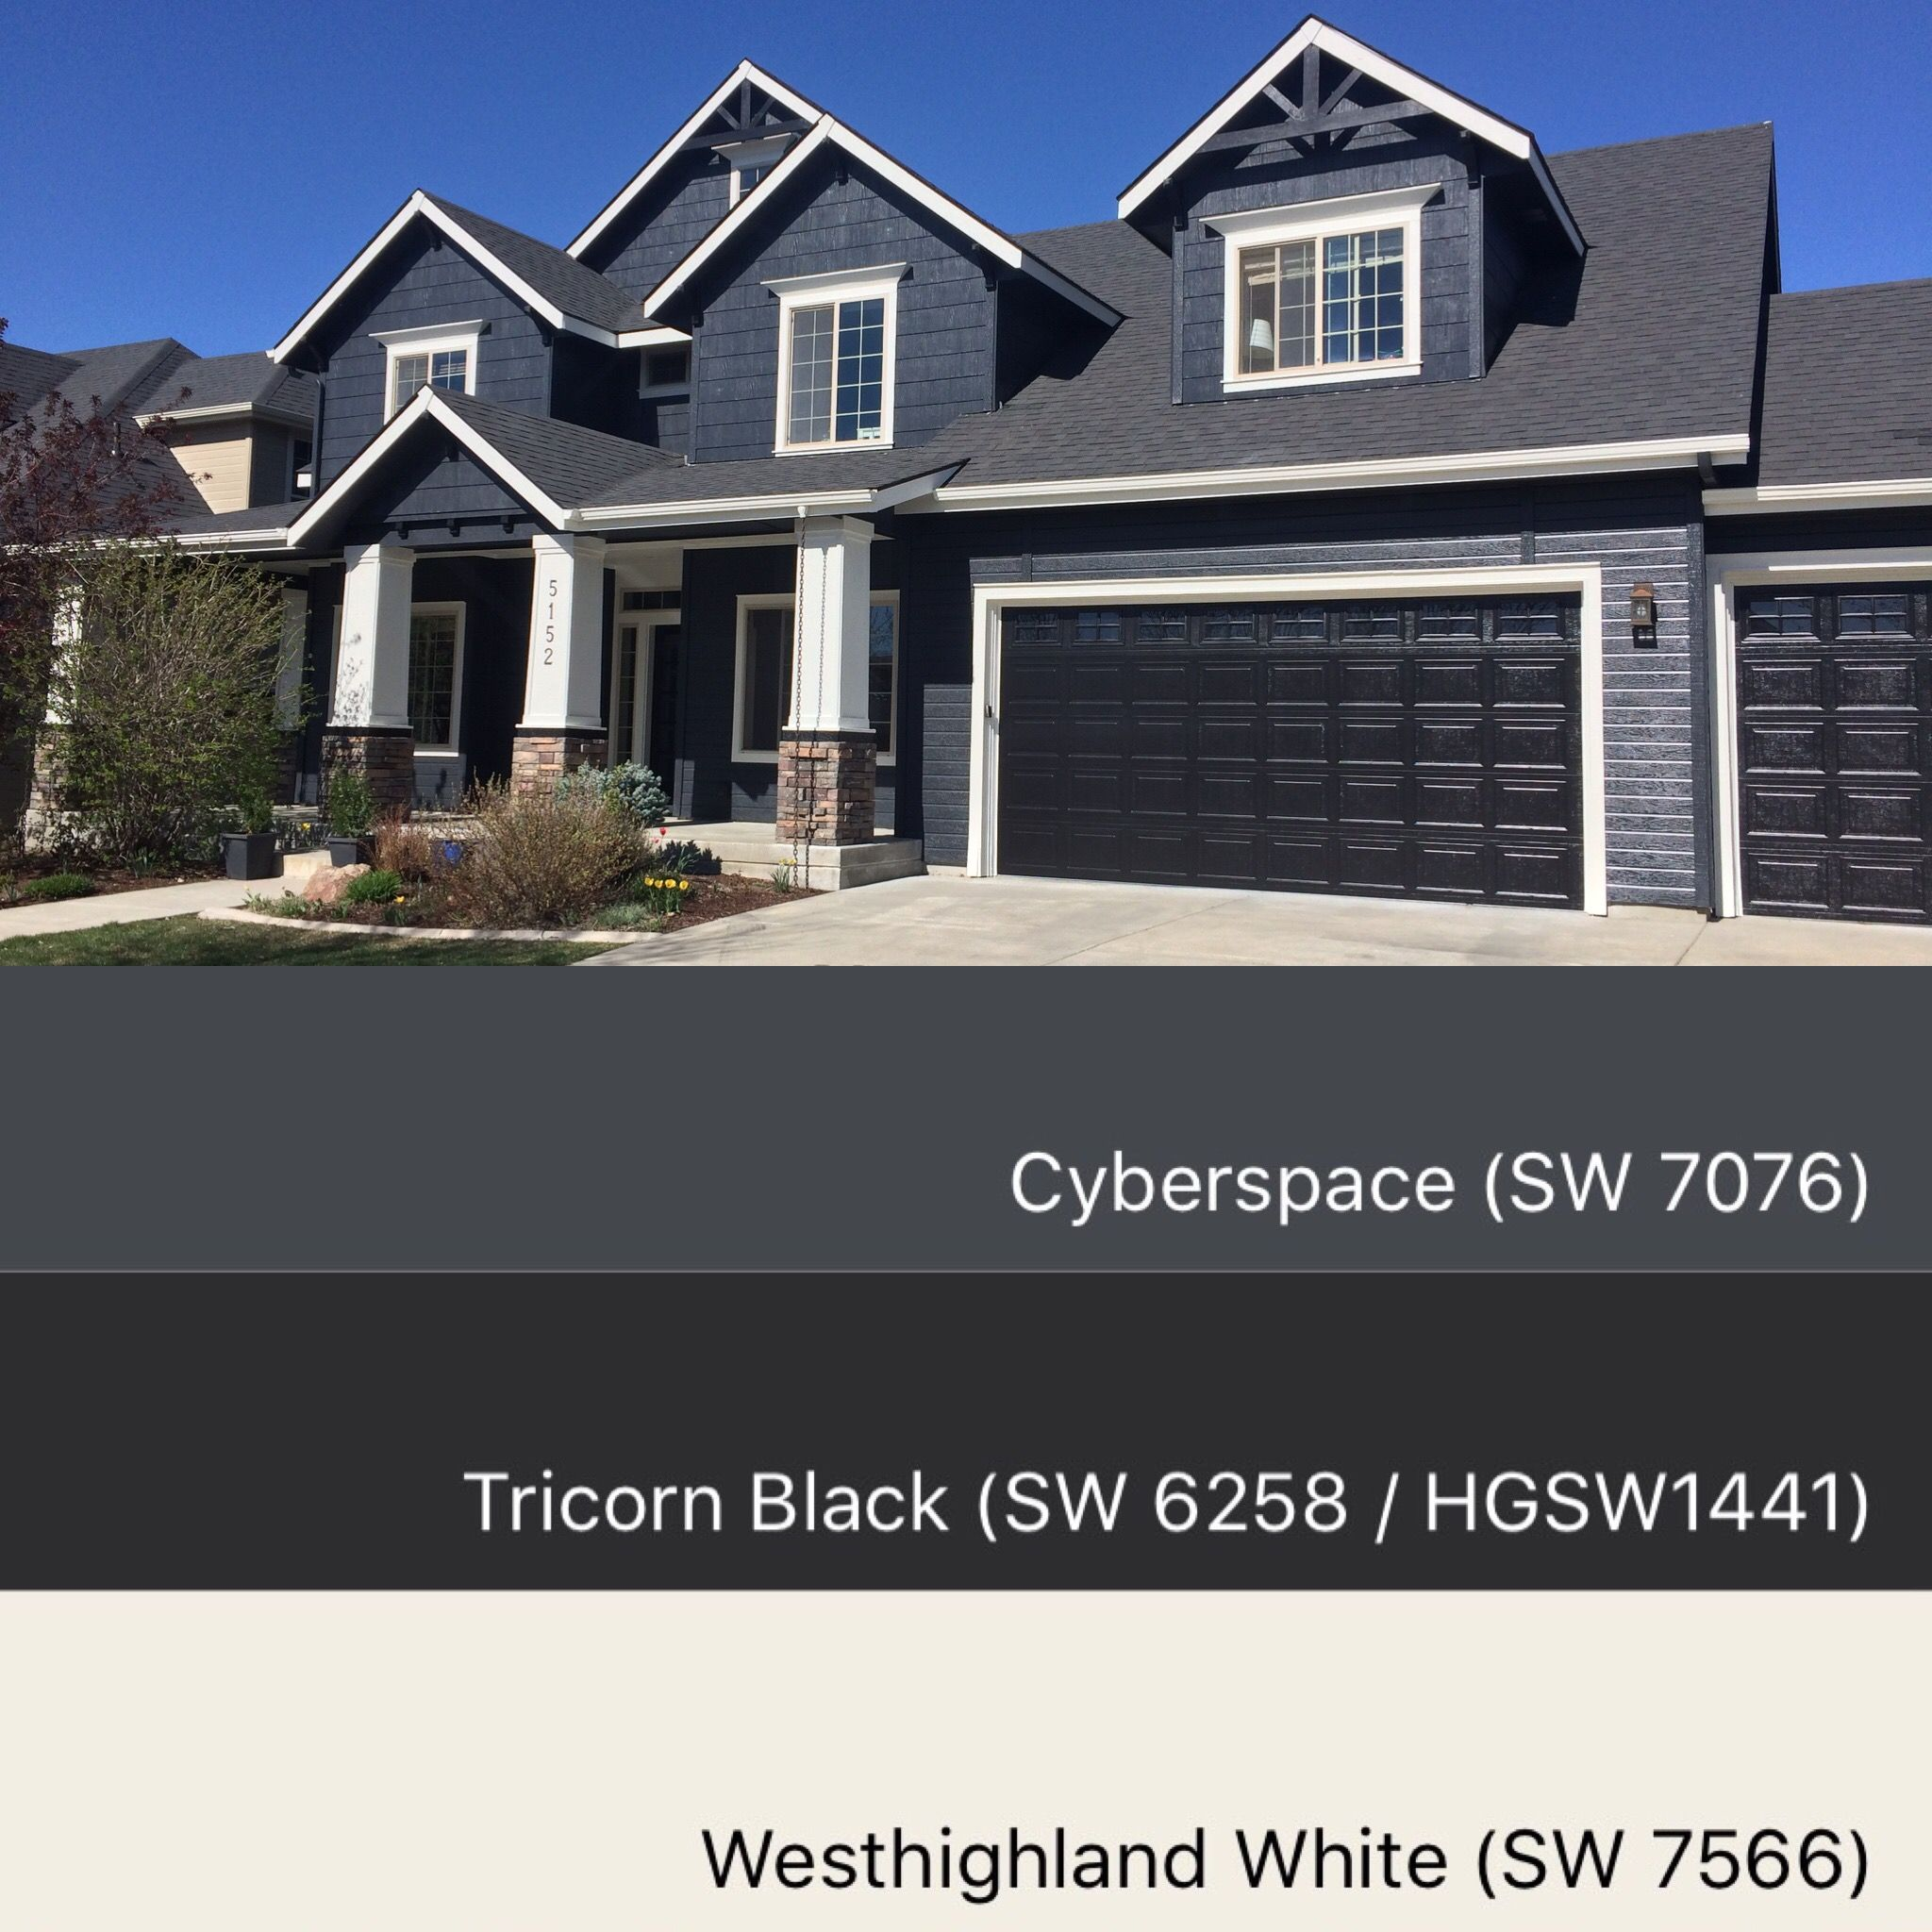 Sherwin Williams Paint Colors Cyberspace 7076 Tricorn Black 6258 Westhighland White 7566